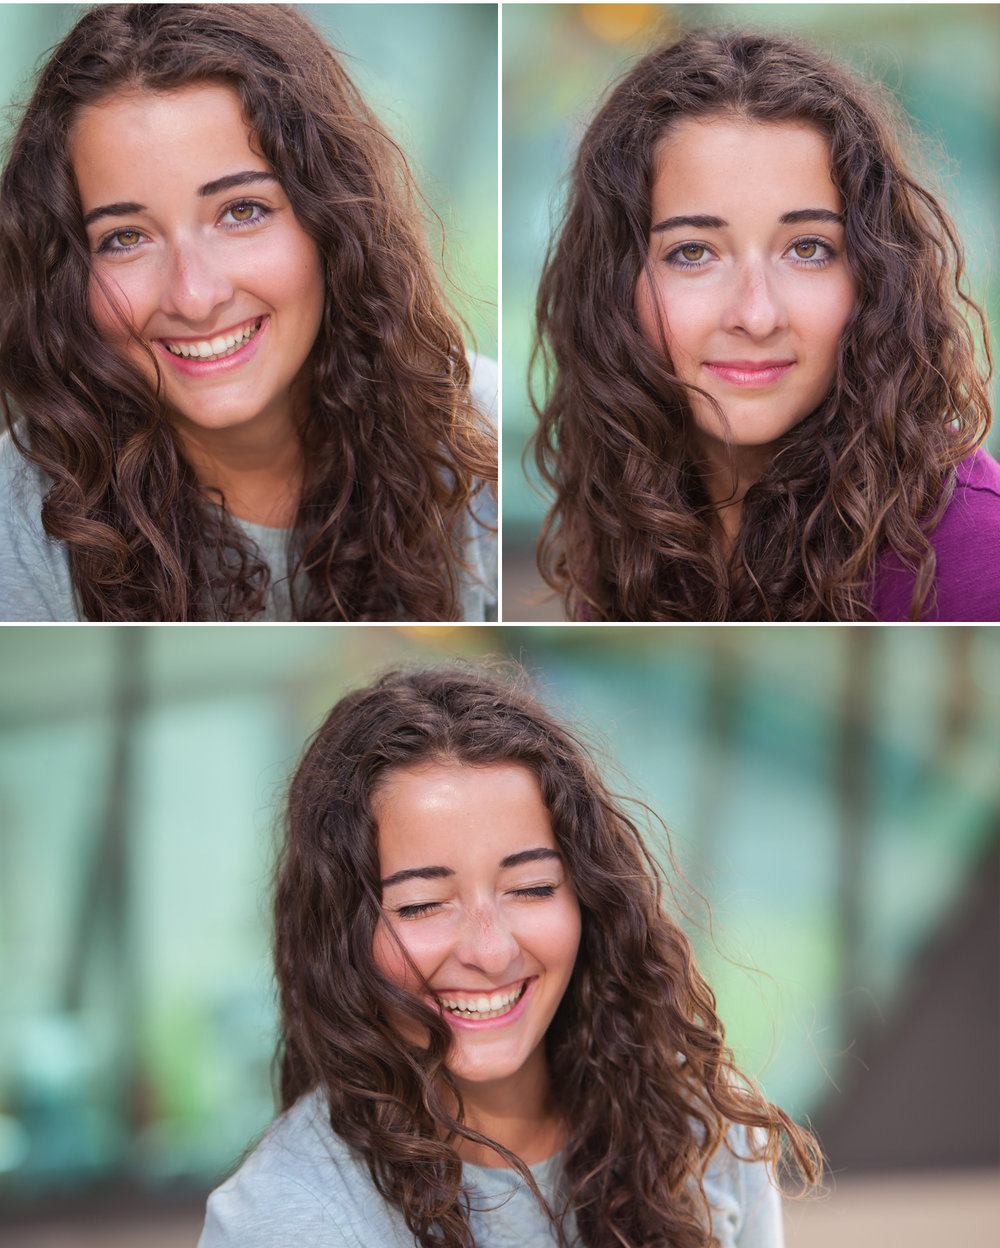 Natural, happy senior pictures, photographer J. Koskinen, Merritt Portrait Studio